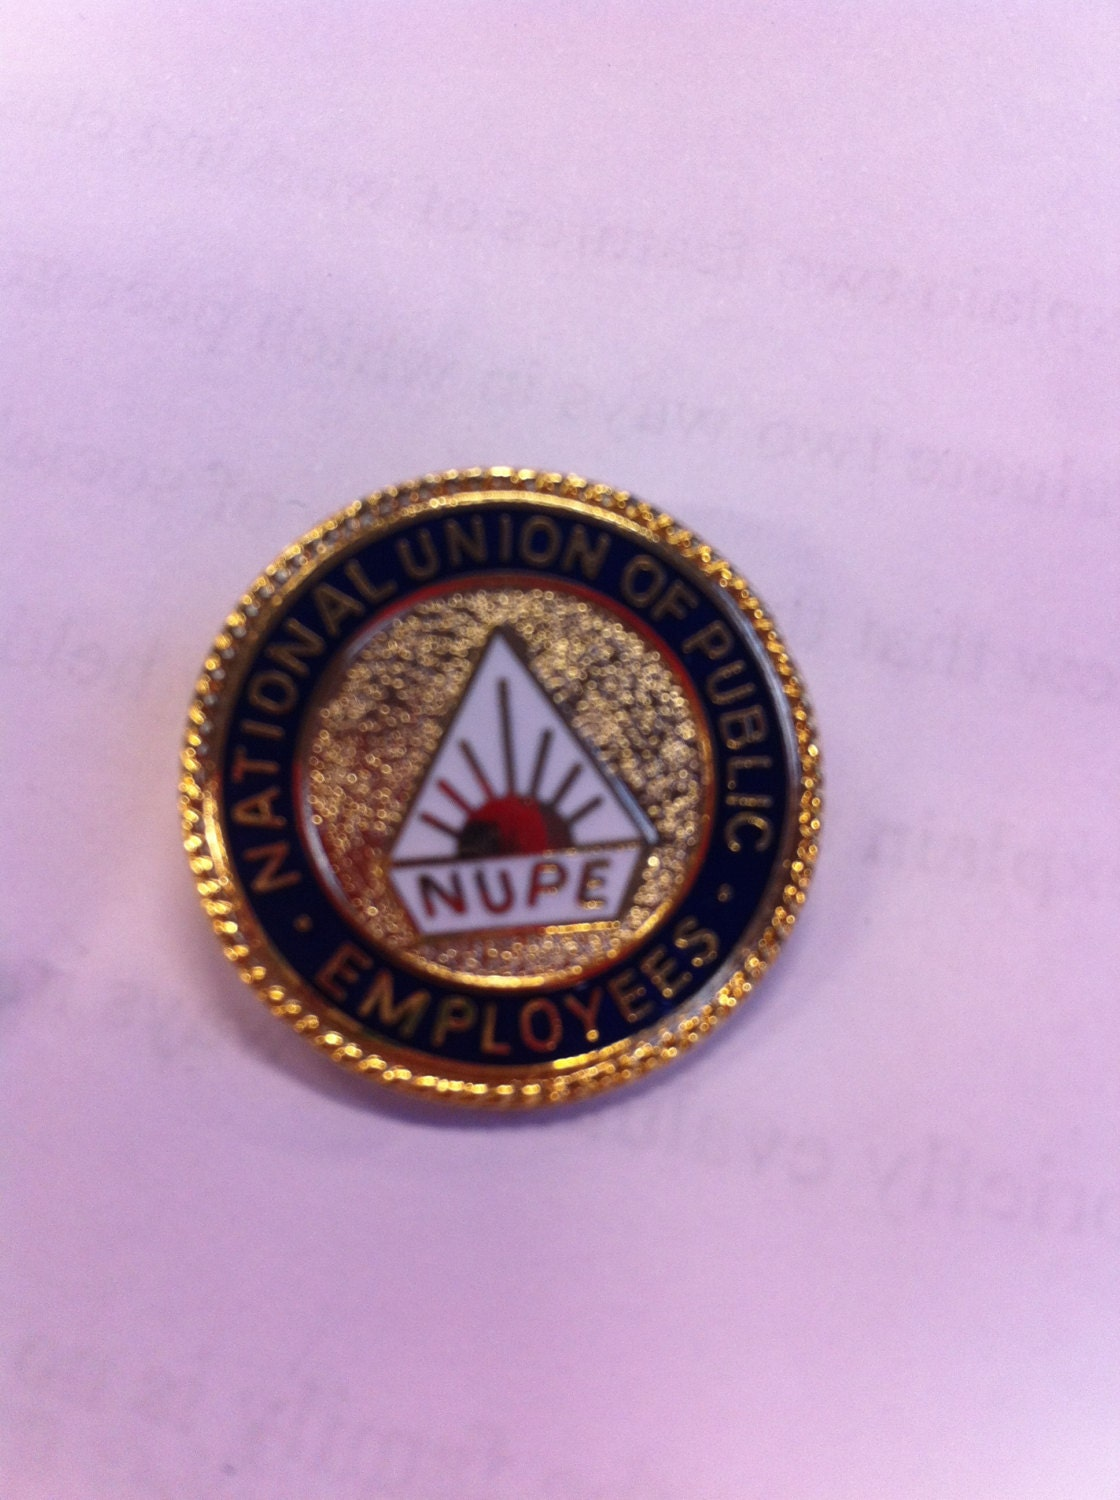 Vintage brooch pin badge NUPE union badge antique retro unisex